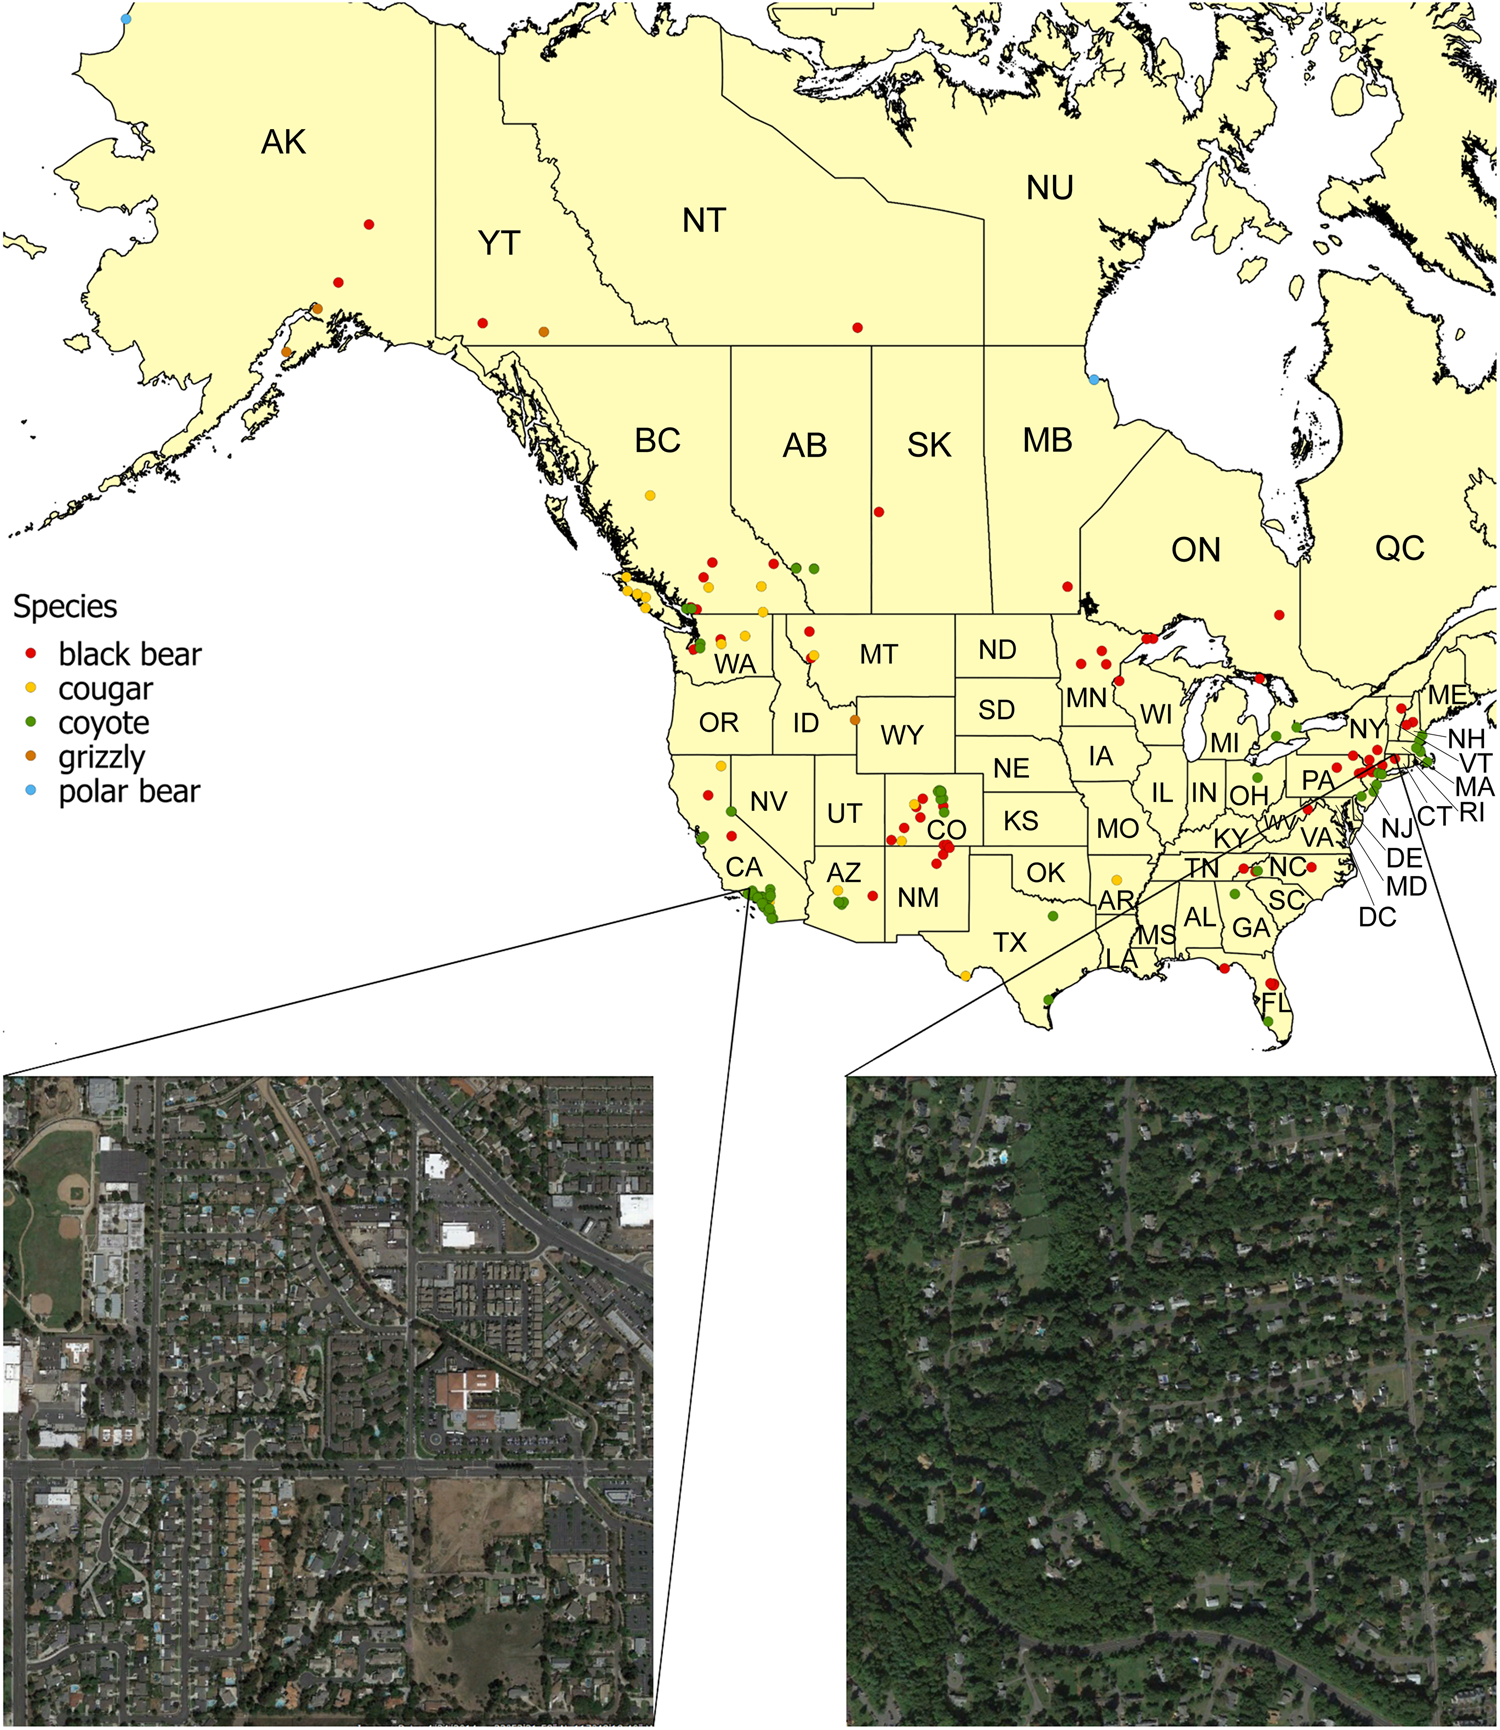 Patterns of wild carnivore attacks on humans in urban areas